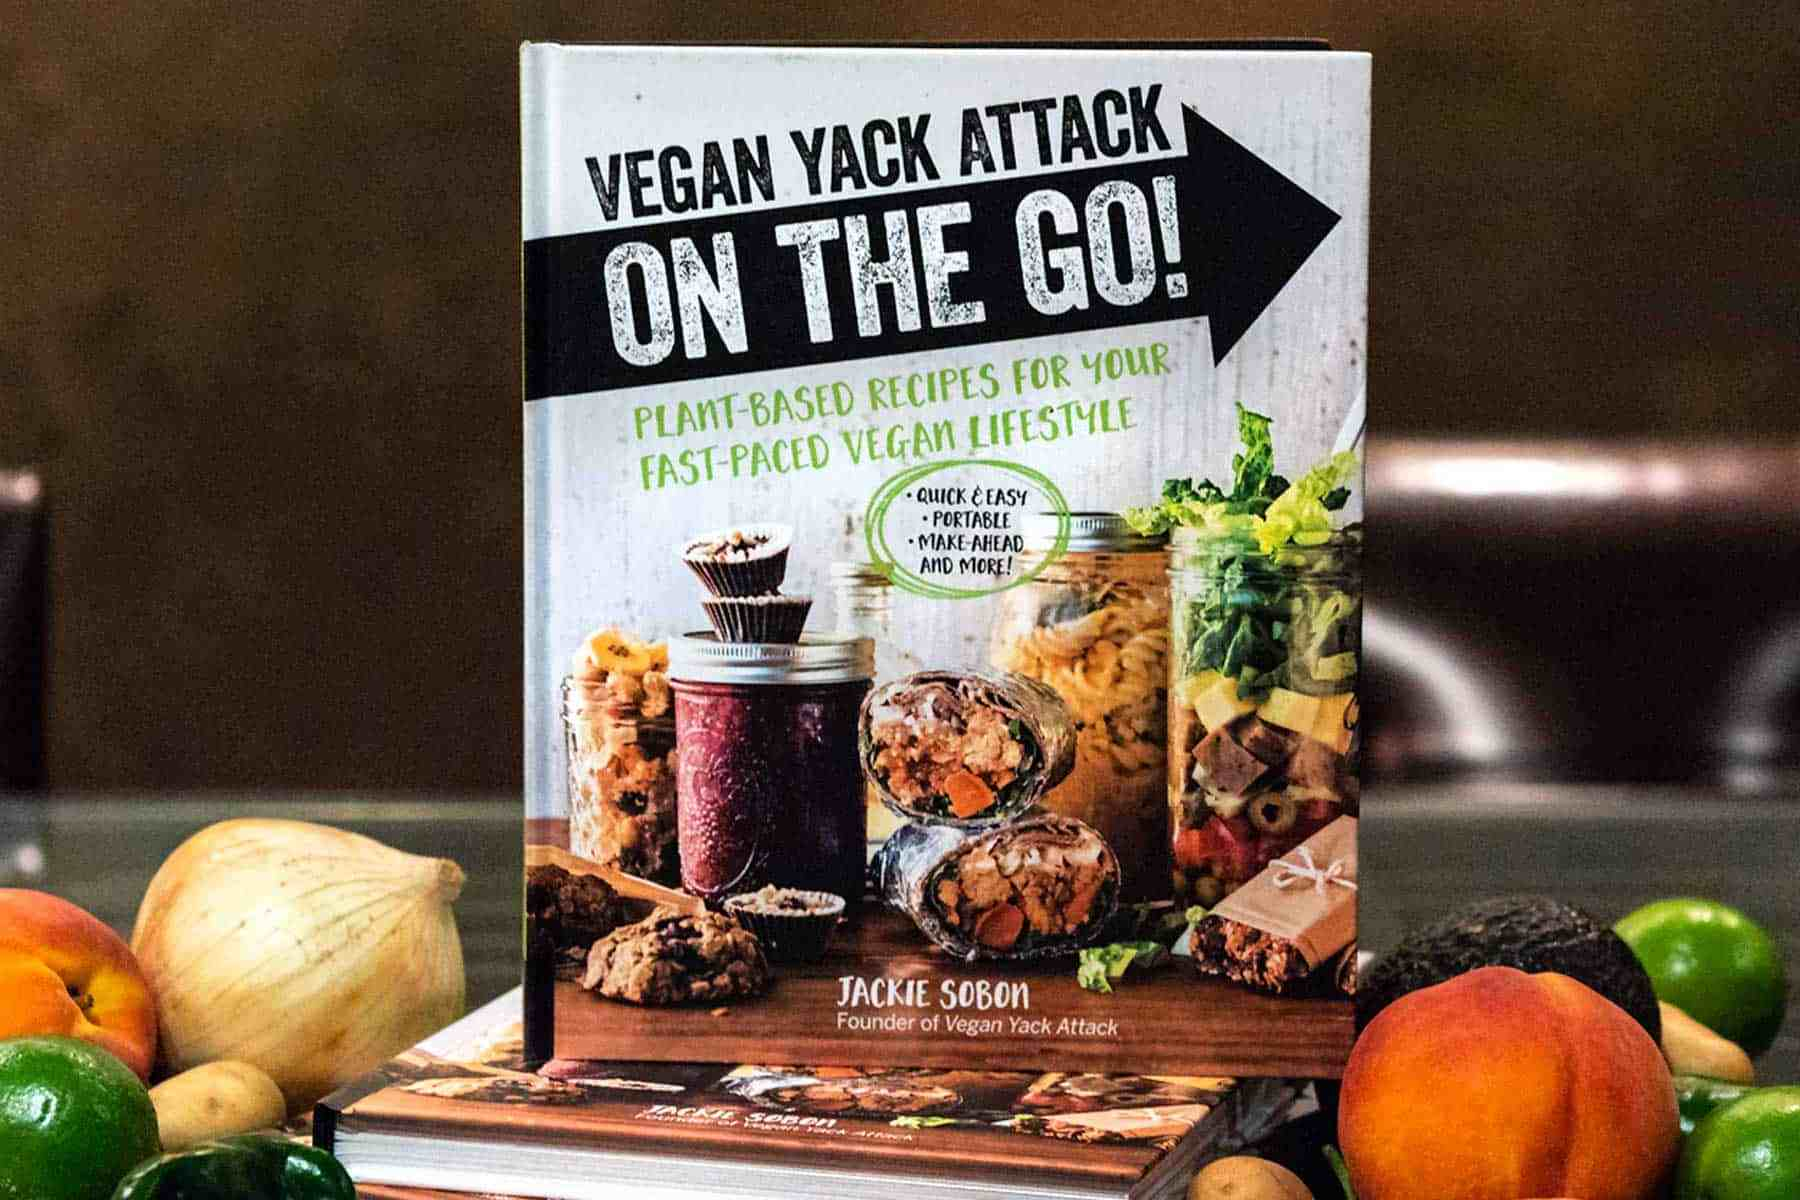 It's here! It's here! The release date of my second cookbook, Vegan Yack Attack On the Go! Quick recipes, make-ahead recipes, lunch, and more.